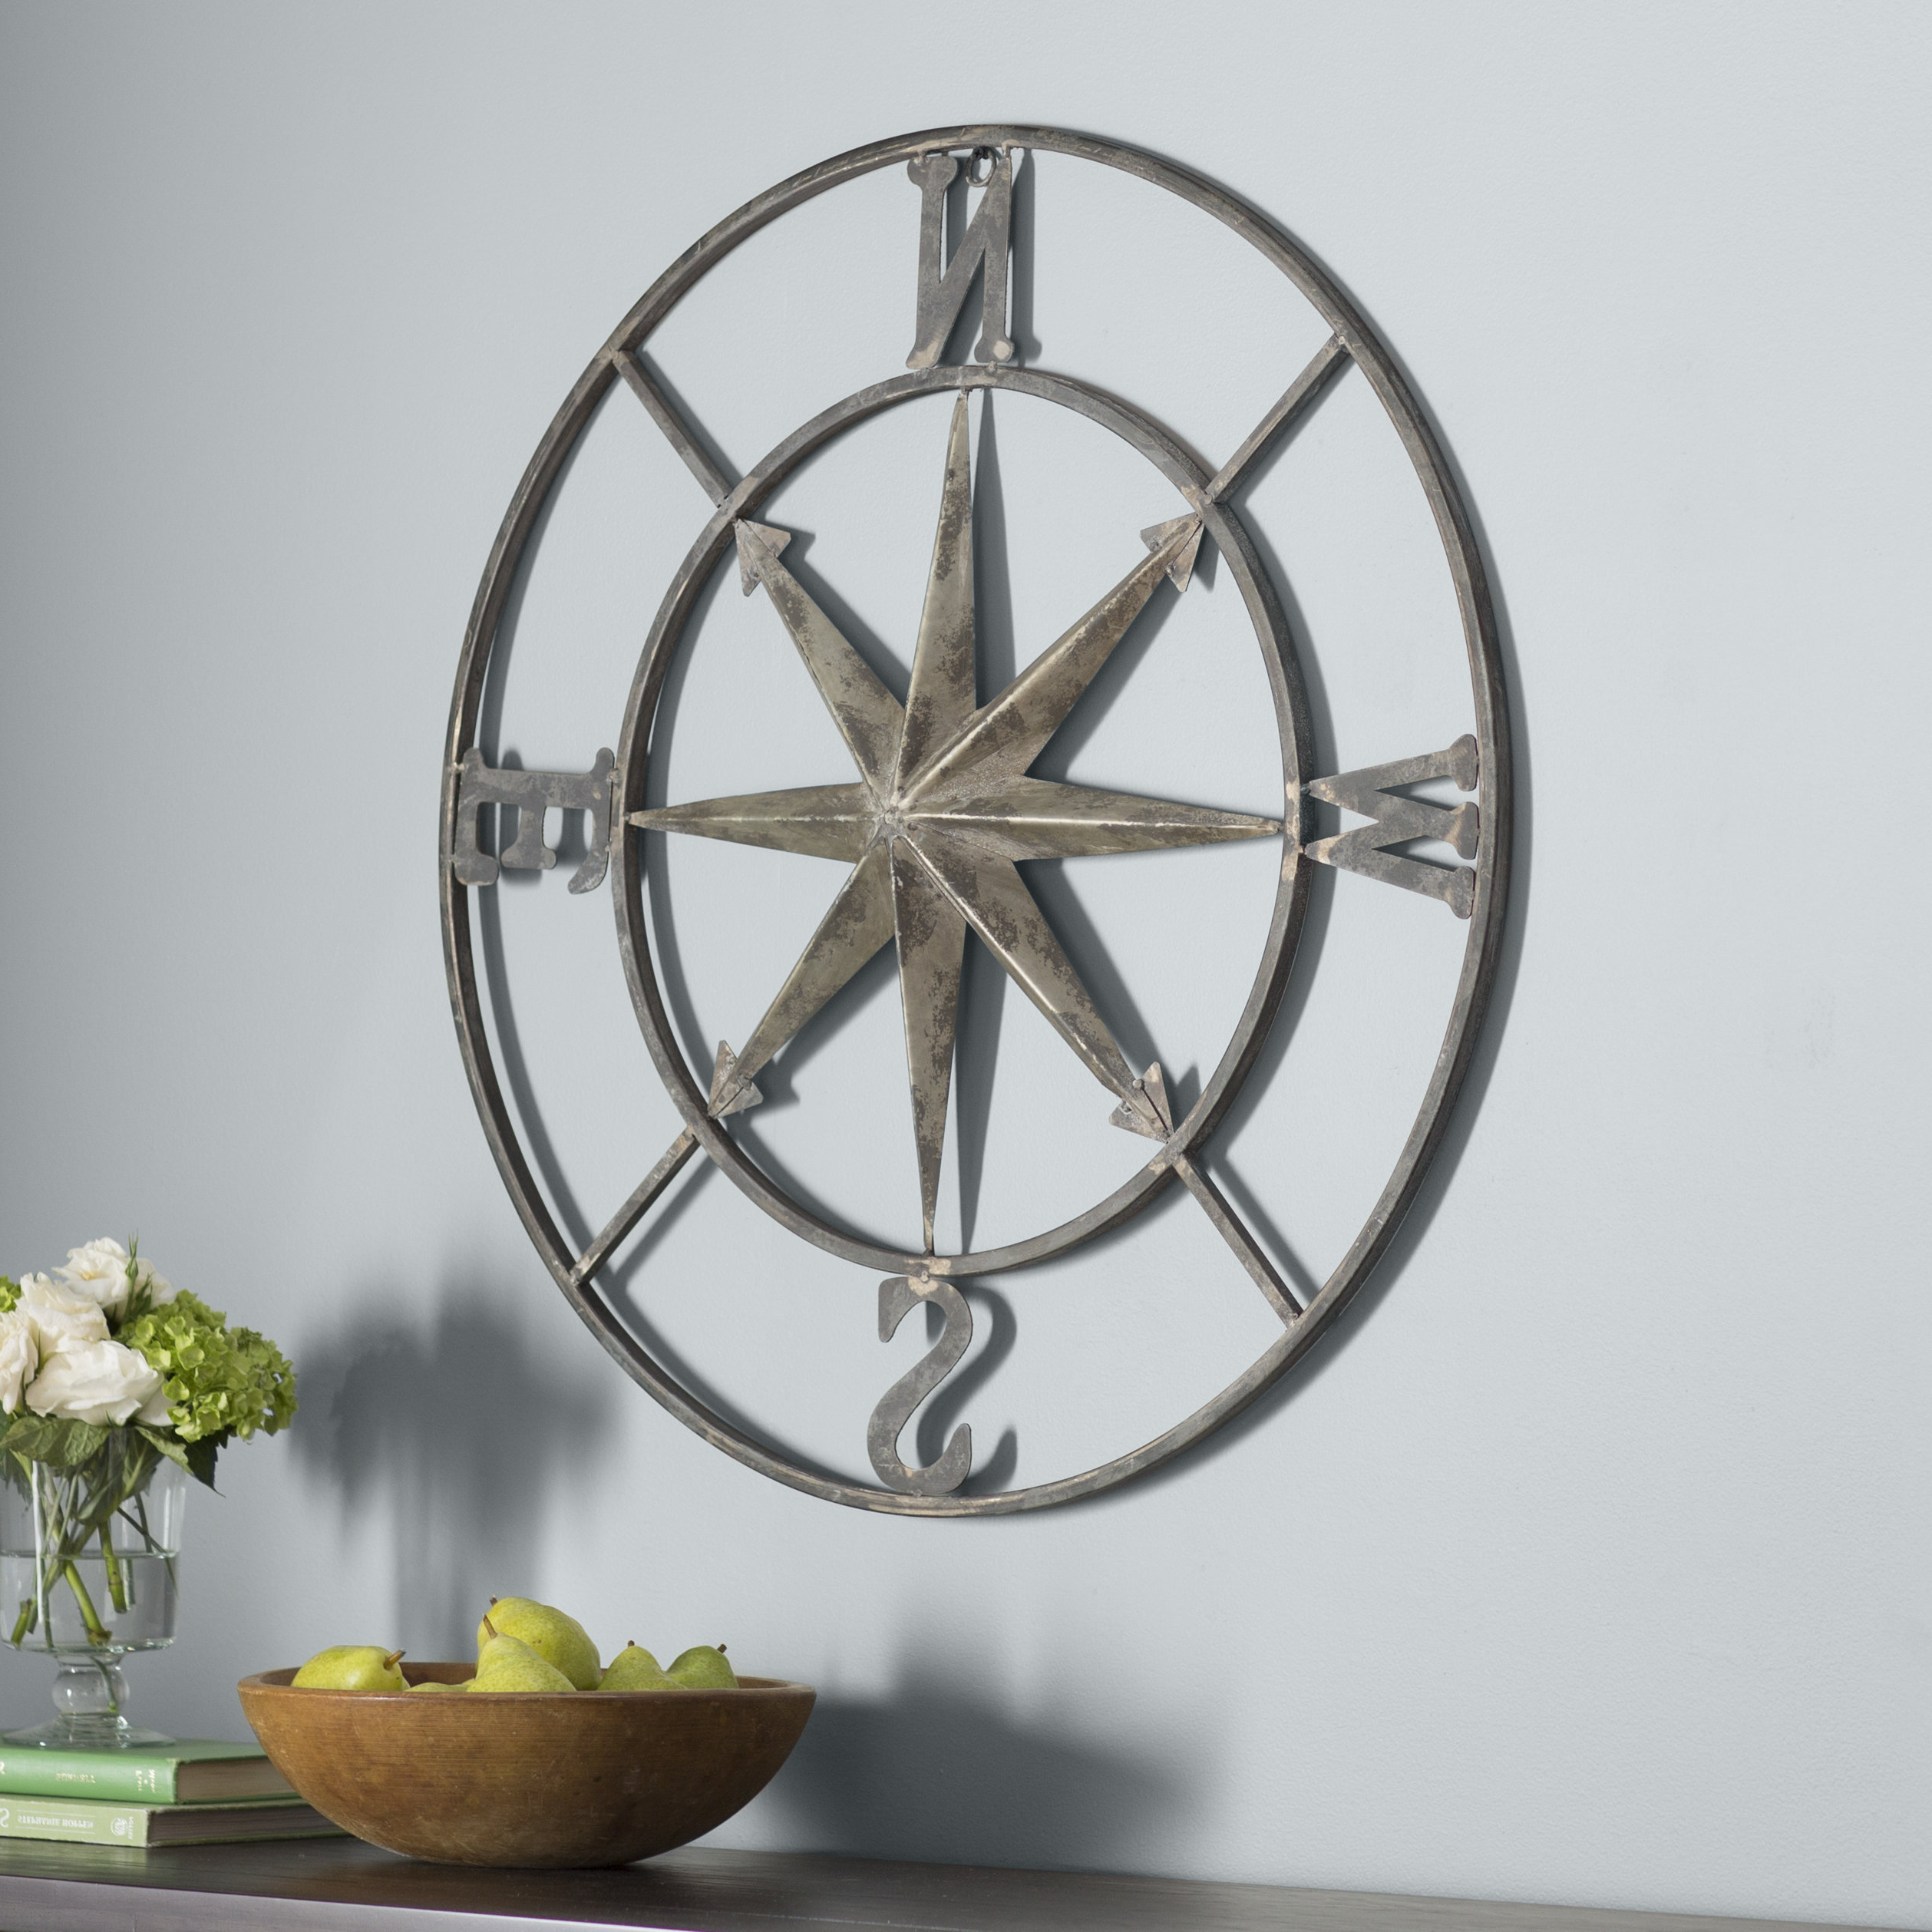 Wayfair With Round Compass Wall Decor (View 17 of 20)